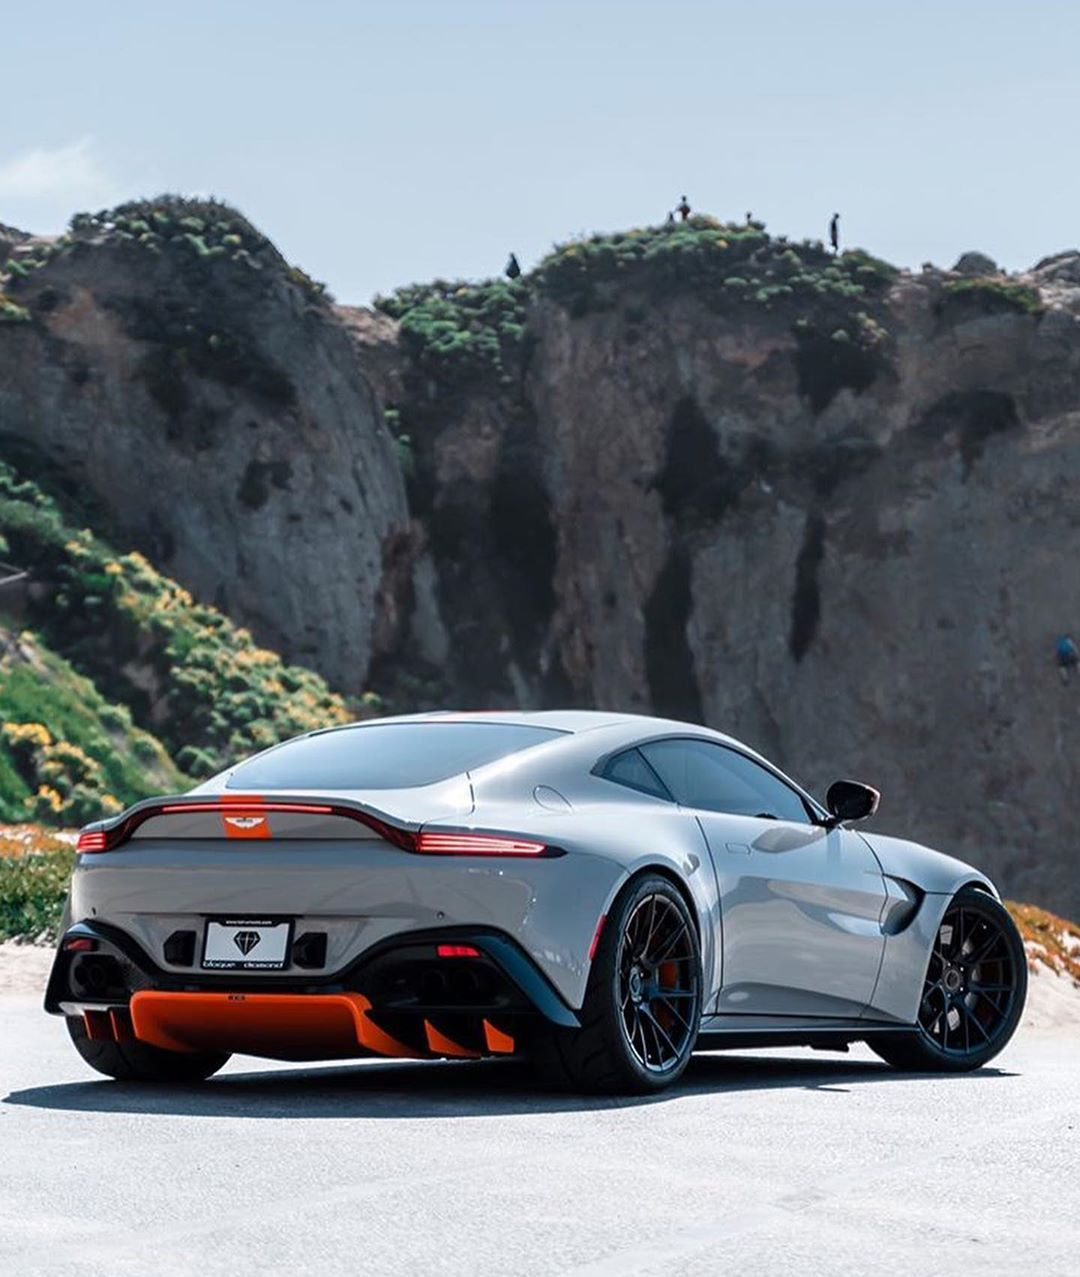 Aston Martin On Instagram This Vantage Looks Amazing With These Bdwheels Photo By Bdwheels Astonma Aston Martin Aston Martin Cars Aston Martin Vanquish